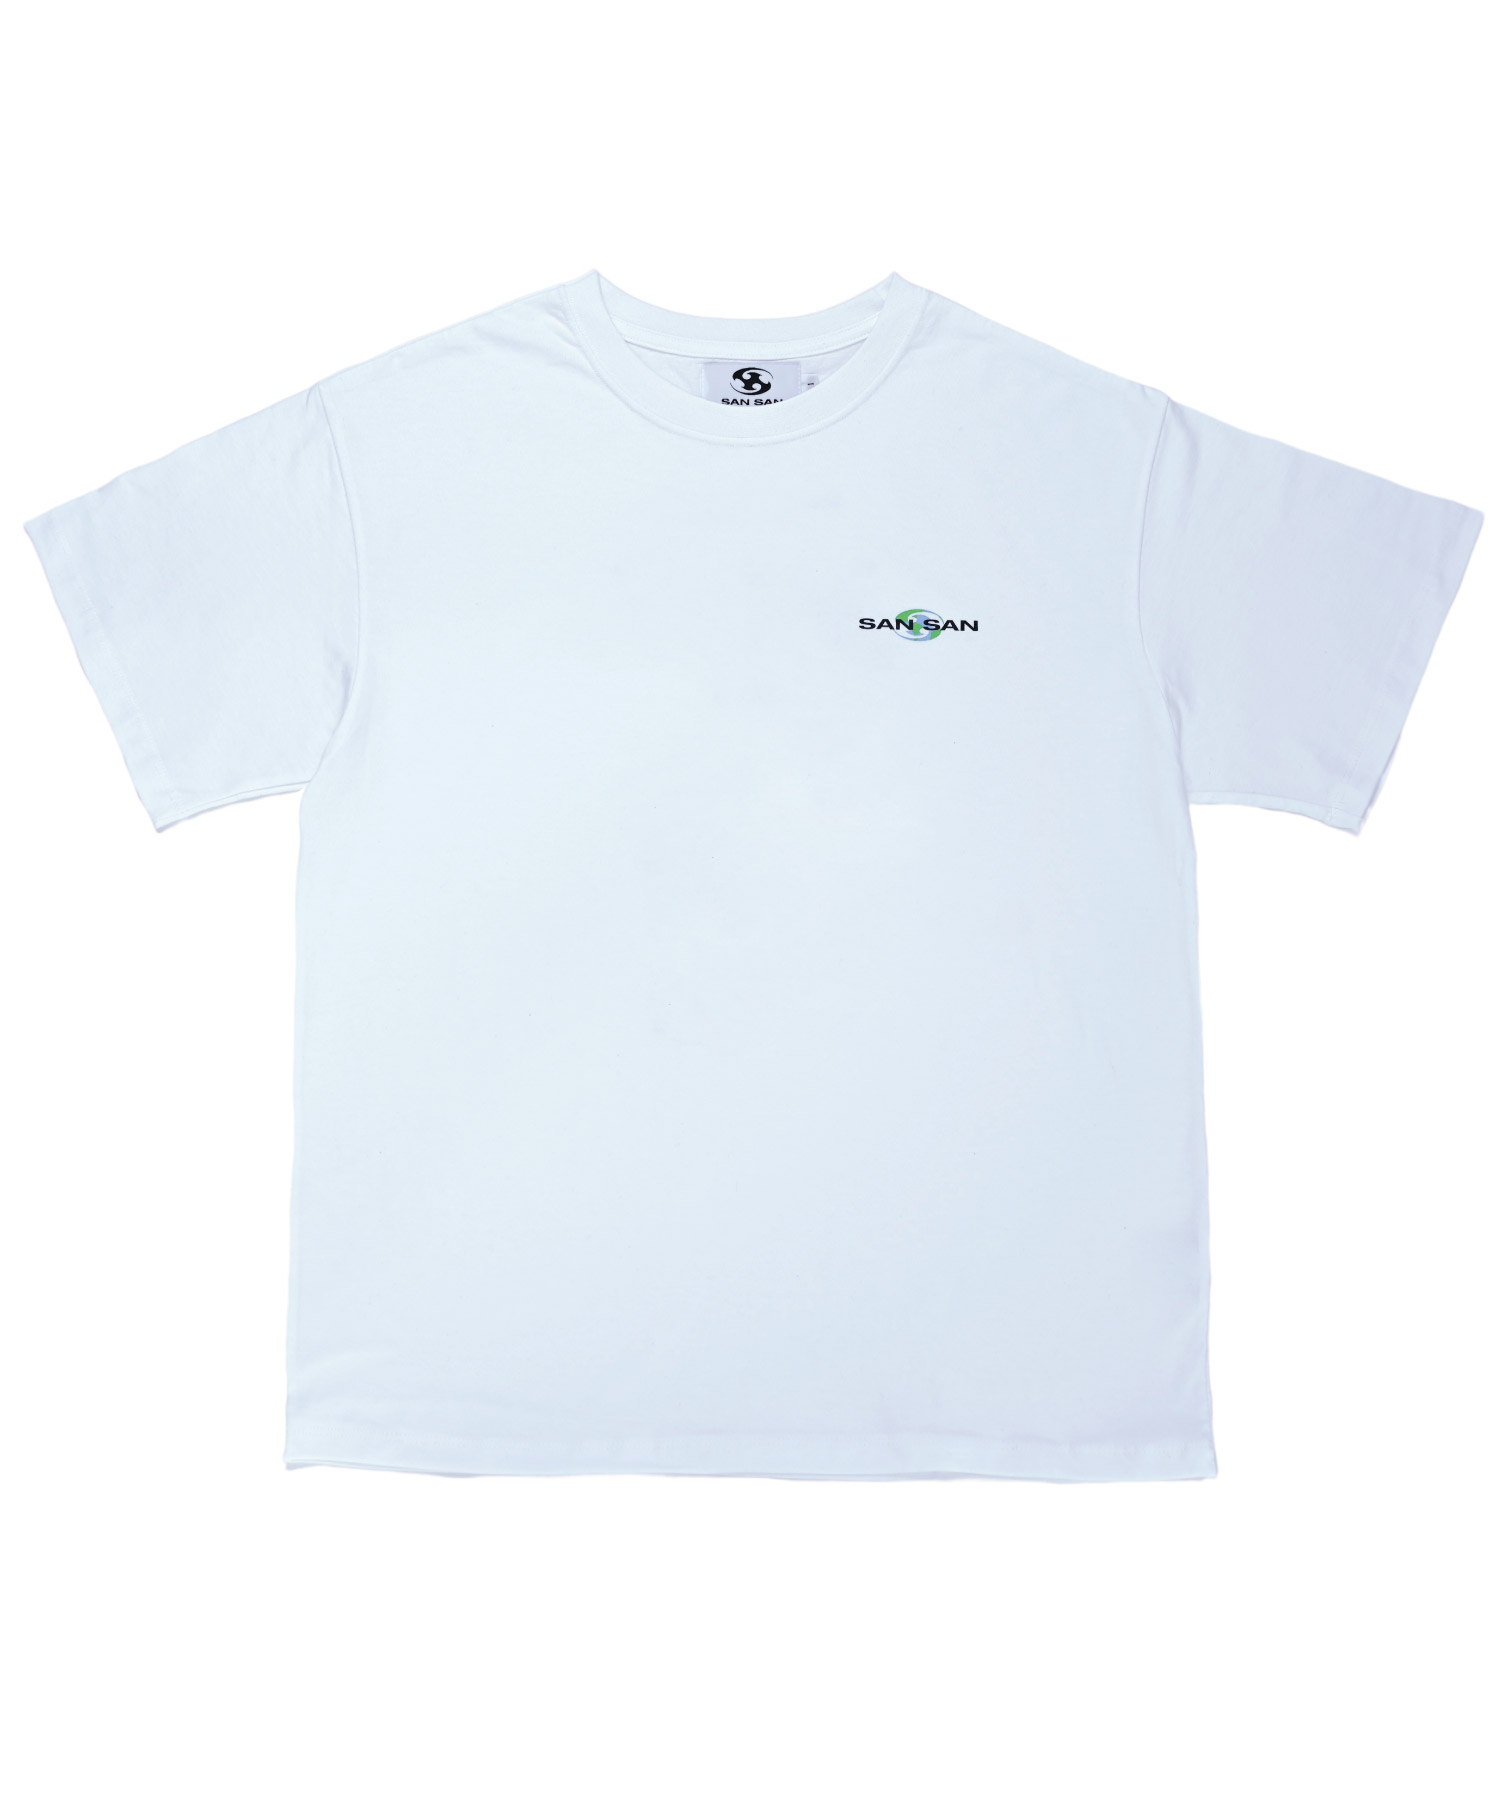 SUPPORT T-SHIRTS WHITE